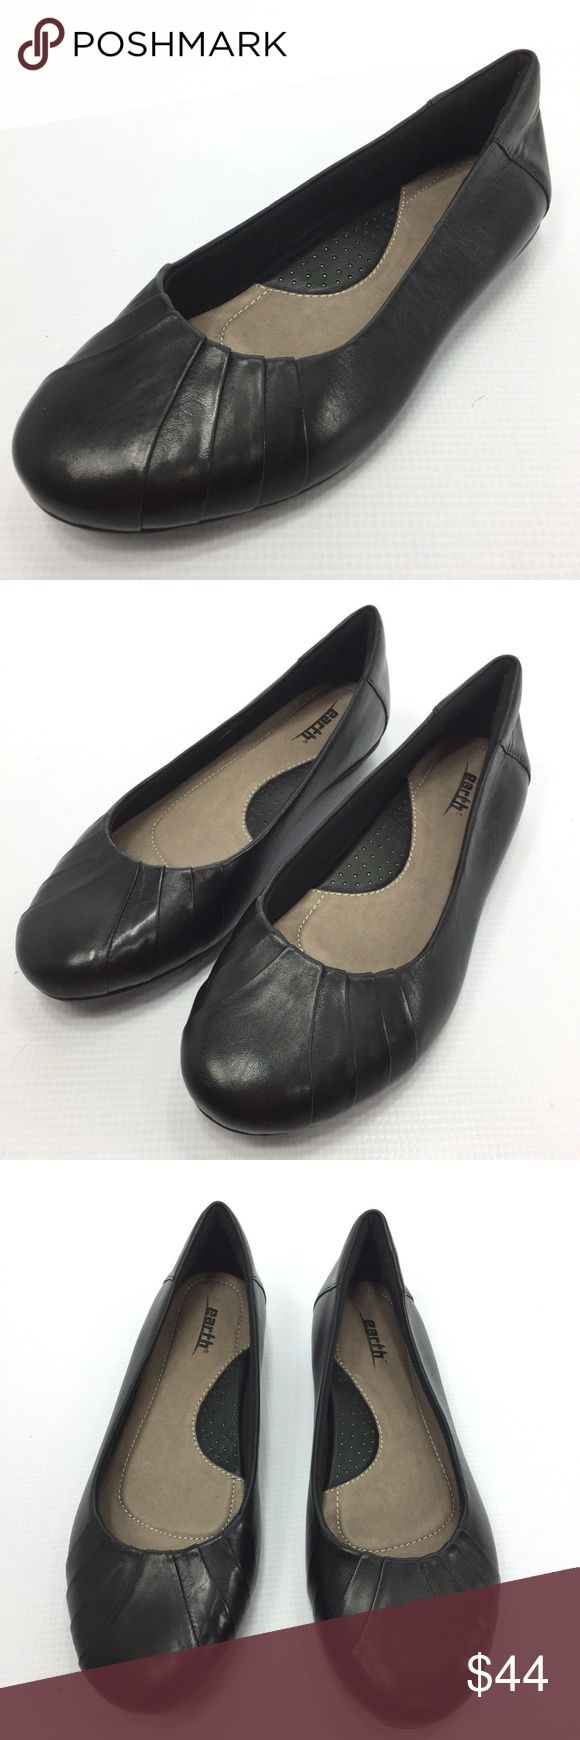 EARTH Bellwether Solid Black Leather Flats 7.5 NEW EARTH Bellwether Women's Solid Black Leather Ballet Flats 7.5M New   Flaw Free; See Photos for Details  The item will be shipped either the same or next day  Send me a message if you have any questions Earth Shoes Flats & Loafers